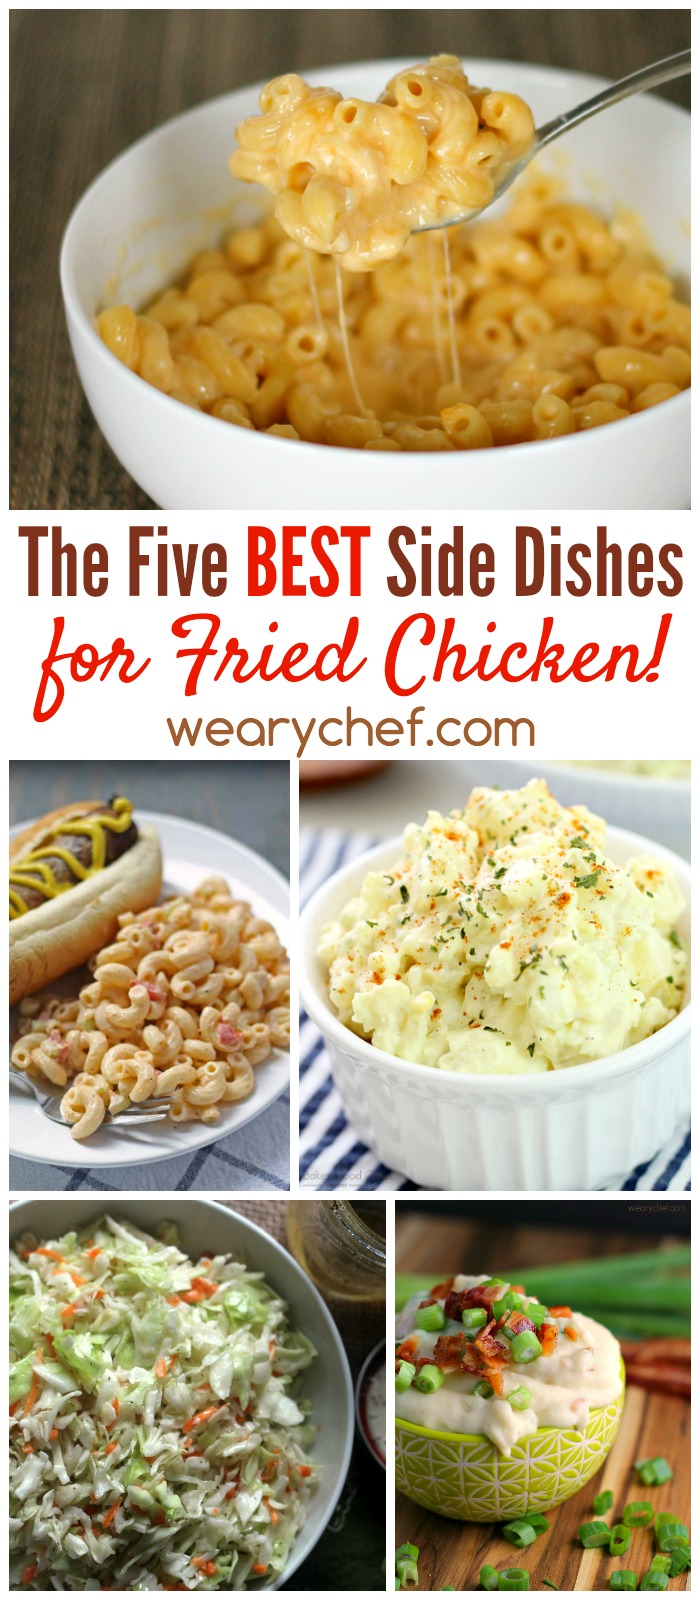 Fried chicken is great, but it's even better when paired with one of these five best side dish recipes!